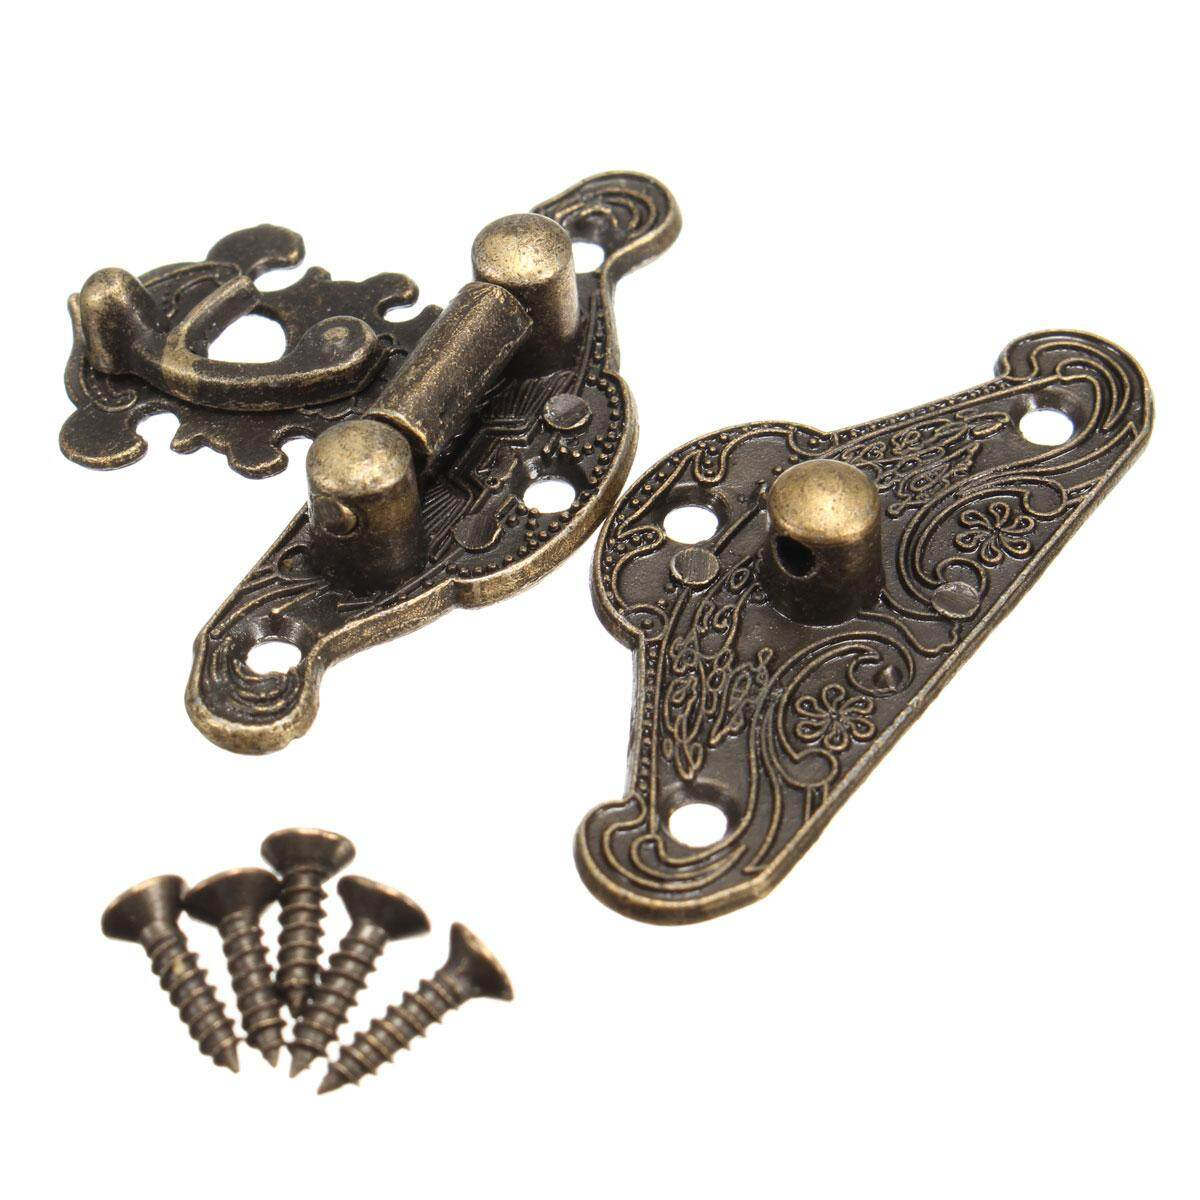 7pcs Antique Retro Vintage Decorative Latch Wooden Jewelry Box Hasp Pad Chest Lock Extra small - intl